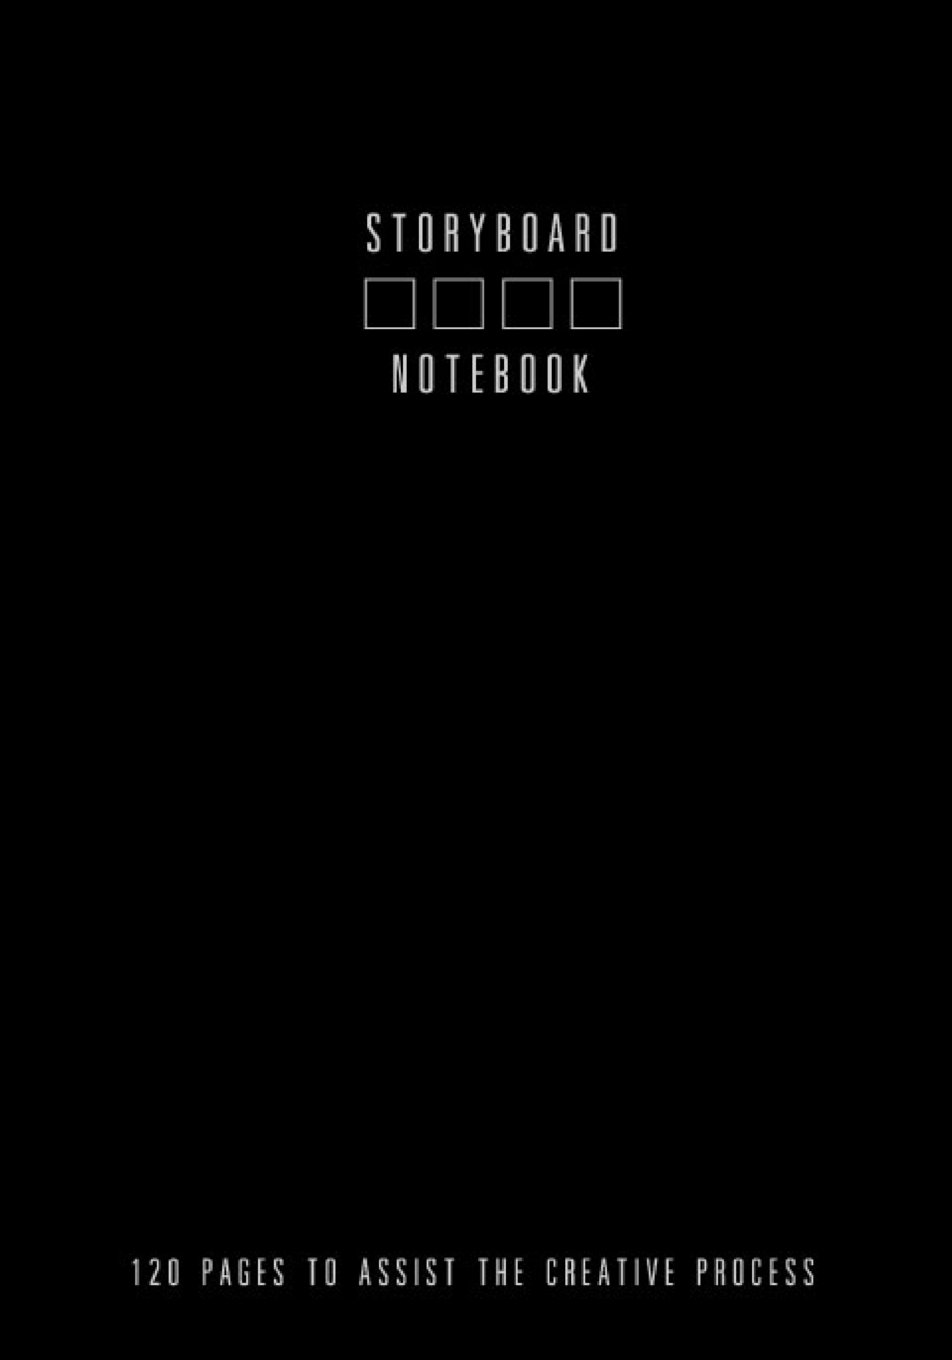 Read Online Storyboard Notebook 120 Pages to Assist the Creative Process: 4 Frames Per Page, Sketch Write Frames Art Filmmakers Animators PDF